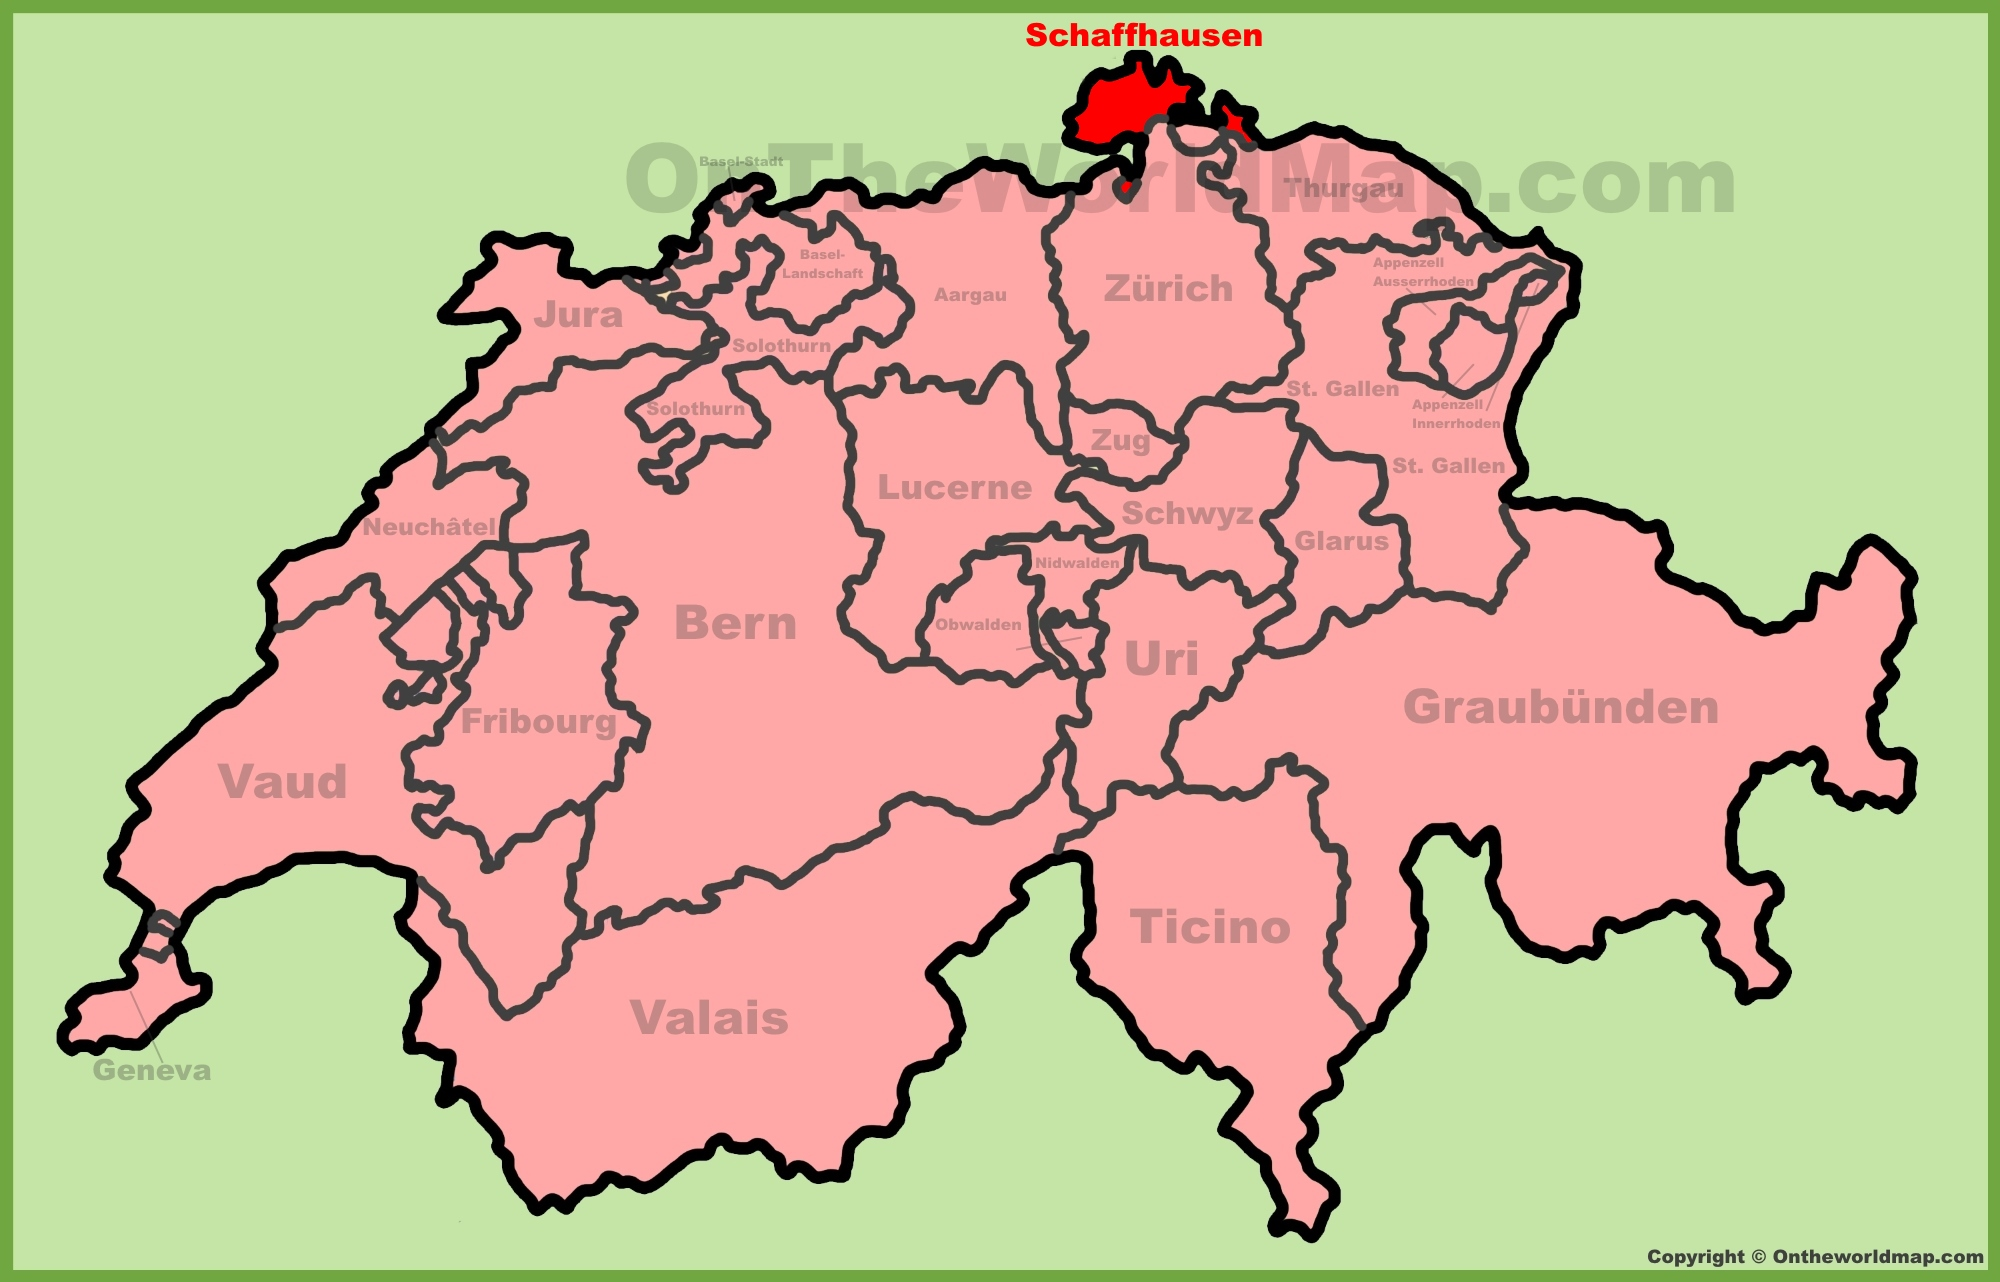 Canton of Schaffhausen location on the Switzerland map